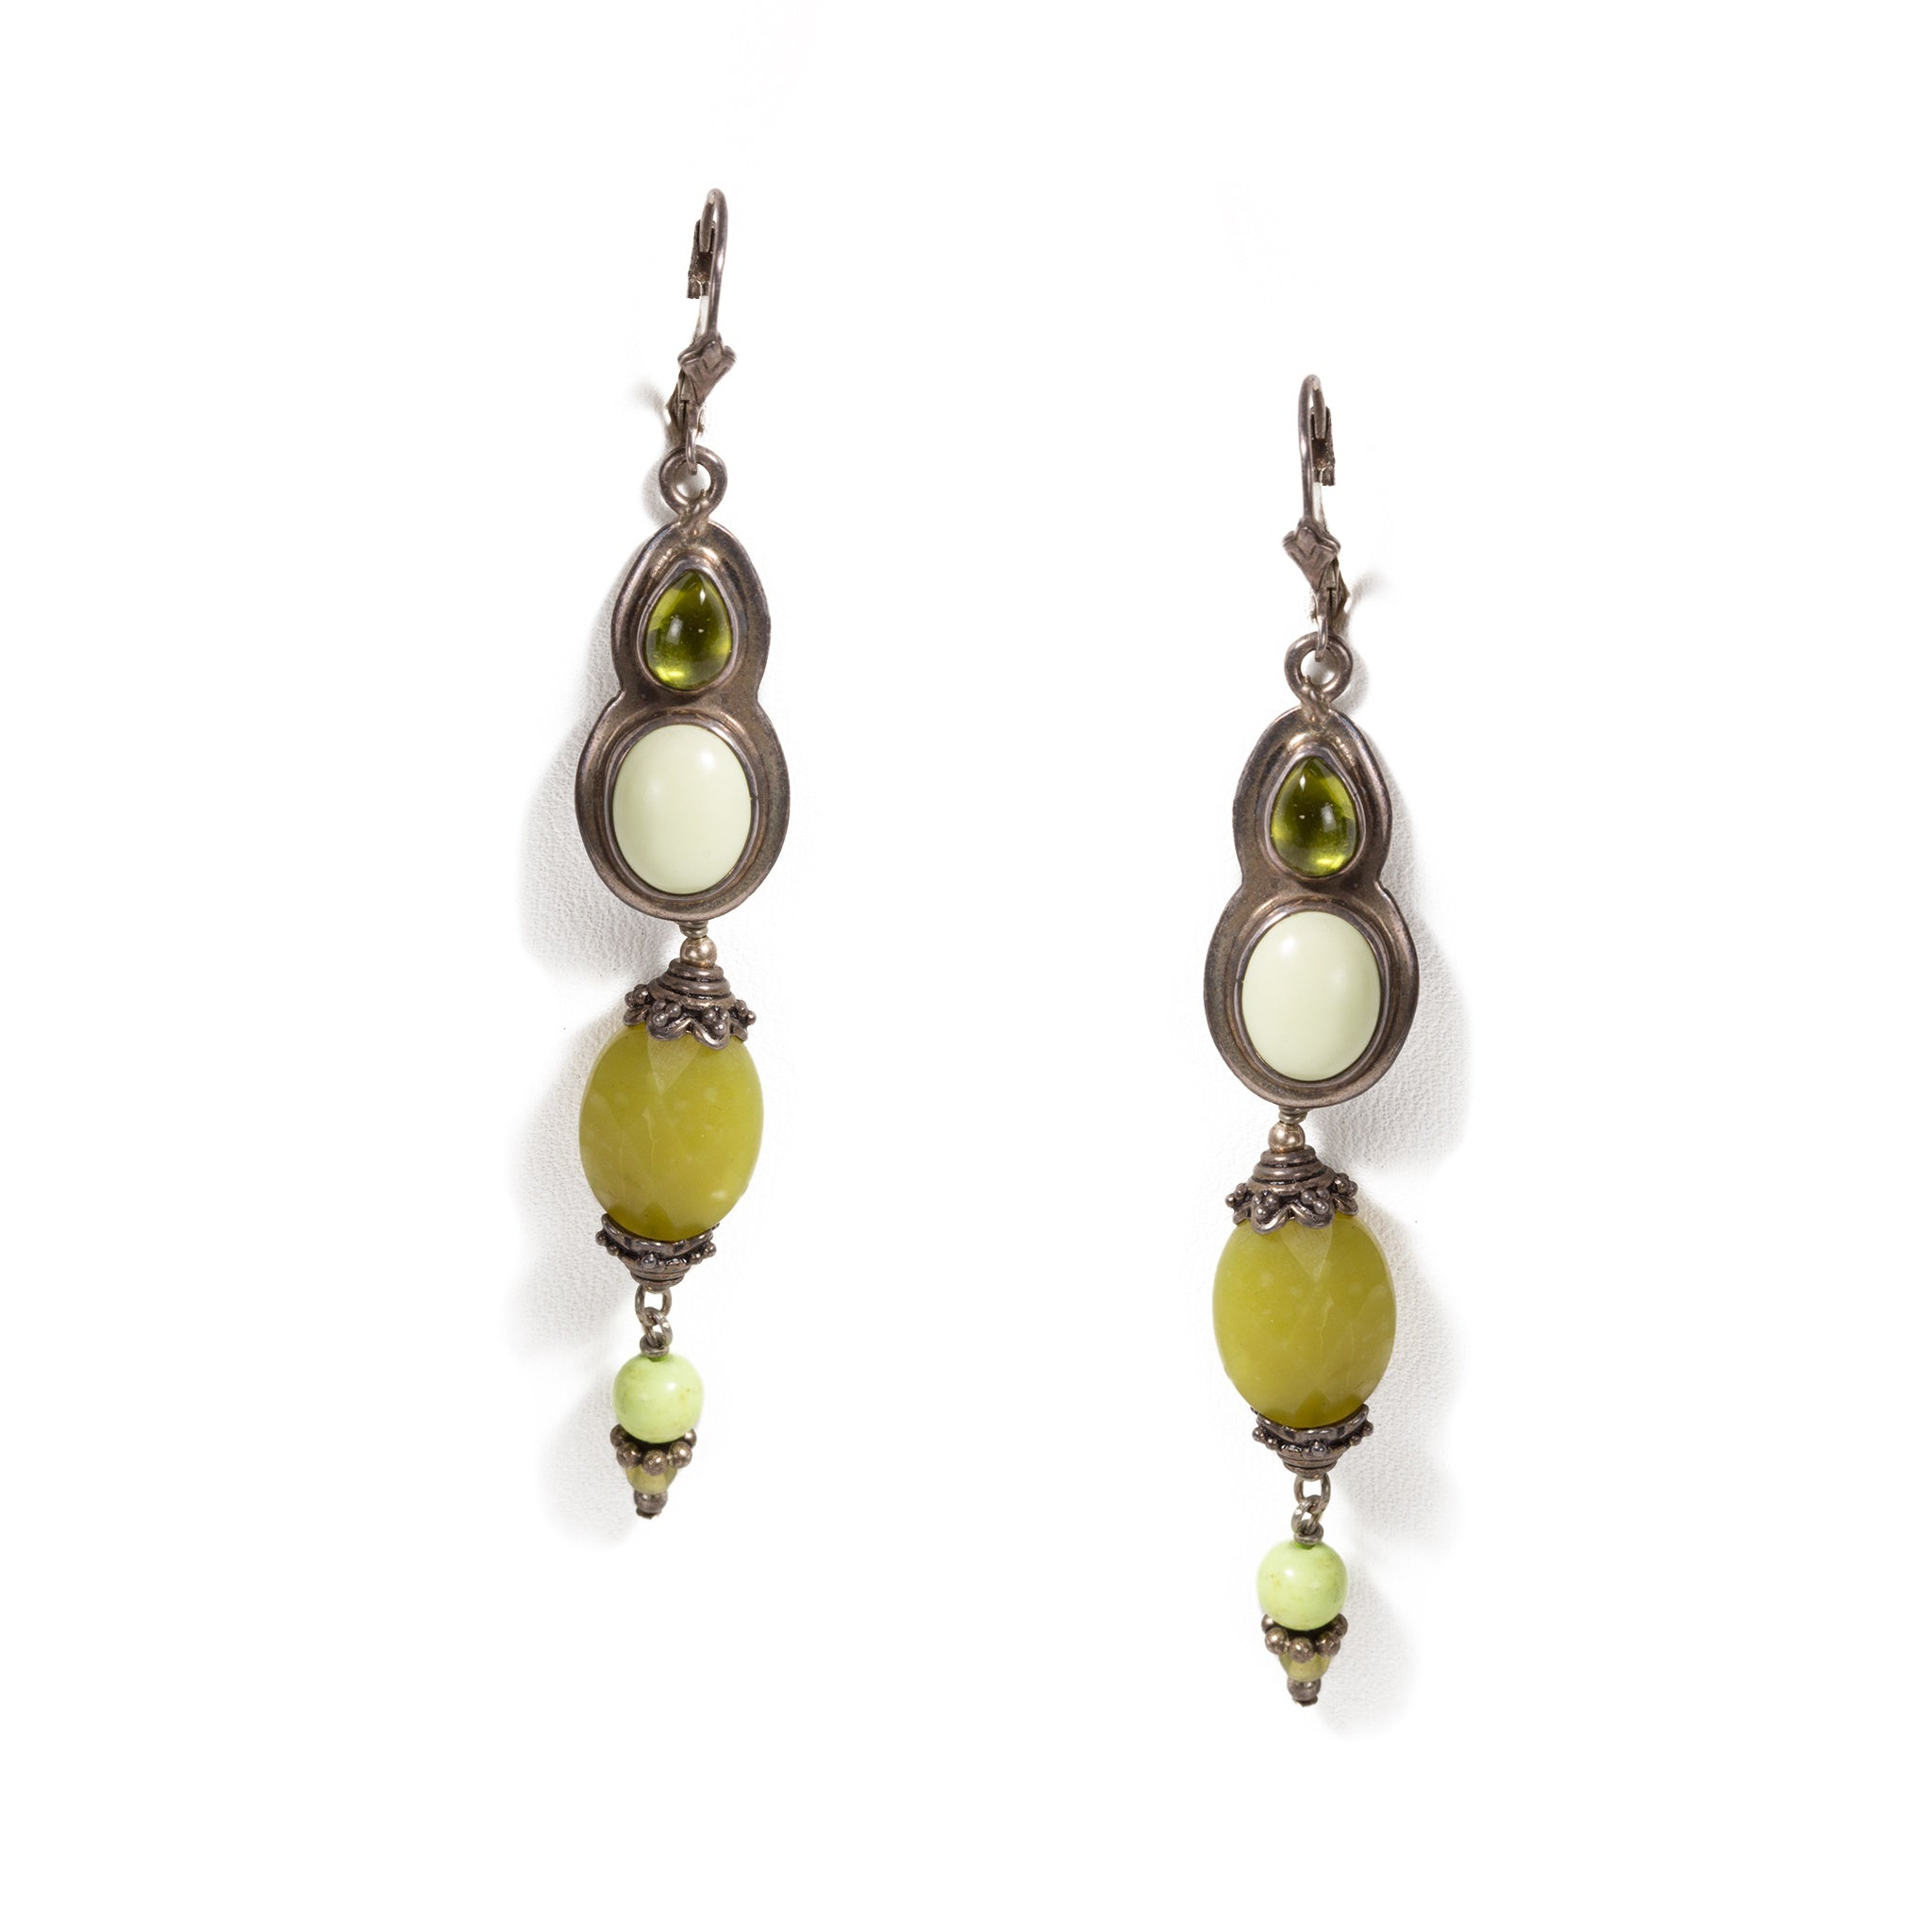 Vesuvianite Lemon Chrysoprase, Olive Jade and Sterling Silver Earrings